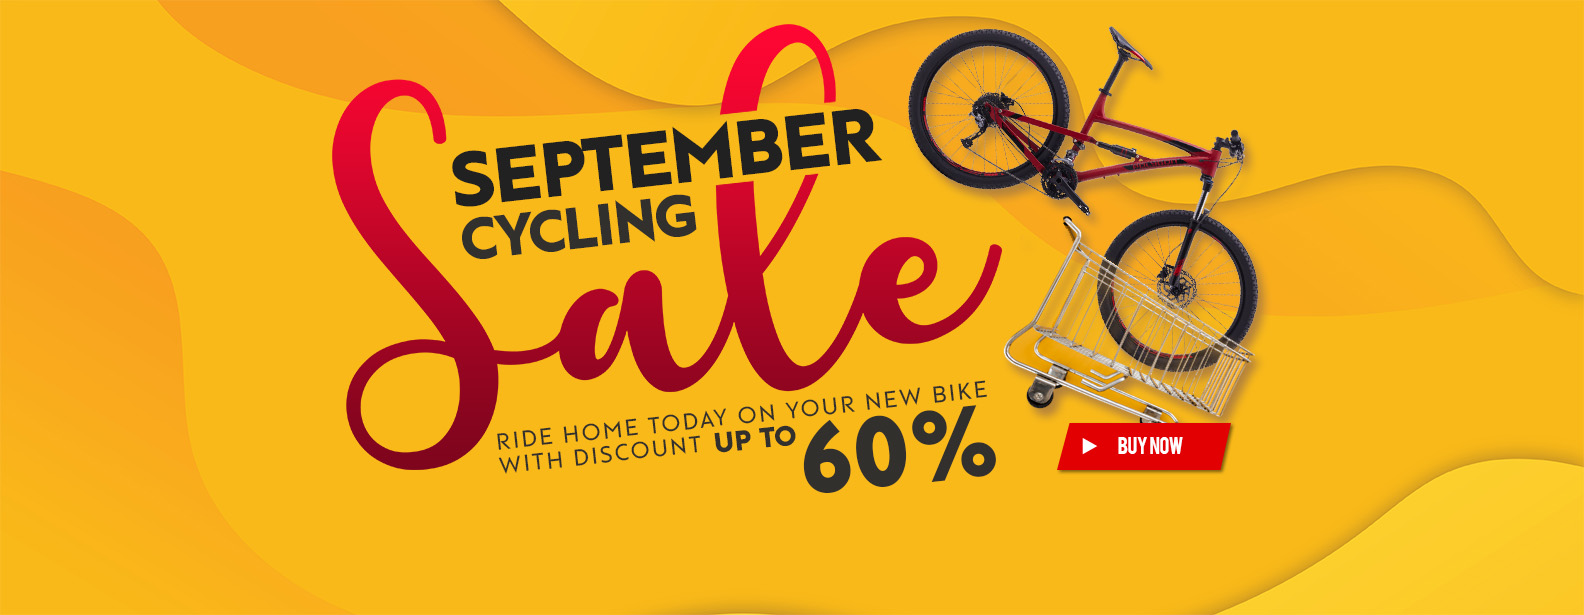 September Cycling Sale